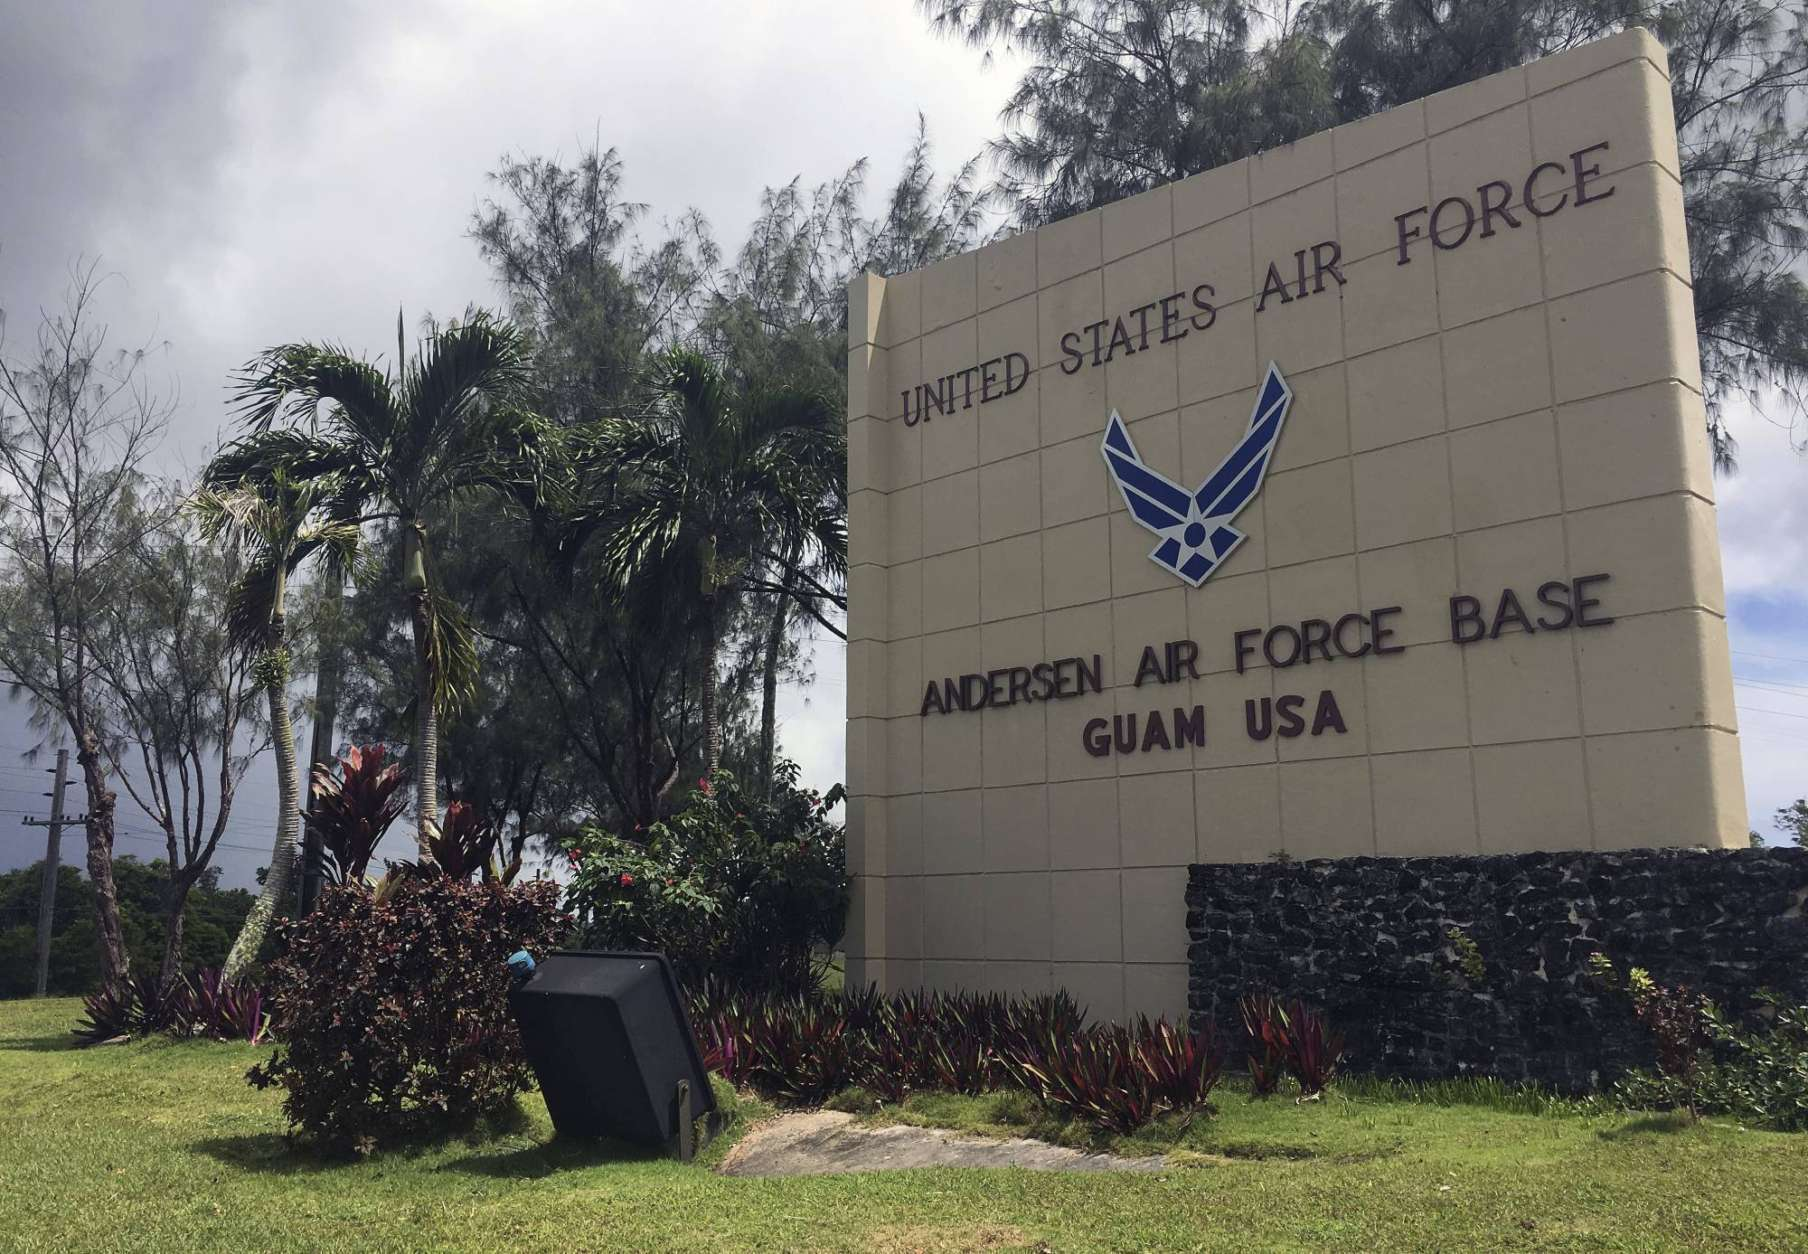 "The front entrance sign for Anderson Air Force base is seen in Yigo, Guam on Thursday morning, Aug. 10, 2017. The small U.S. territory of Guam has become a focal point after North Korea's army threatened to use ballistic missiles to create an ""enveloping fire"" around the island. The exclamation came after President Donald Trump warned Pyongyang of ""fire and fury like the world has never seen."" (AP Photo/Tassanee Vejpongsa)"